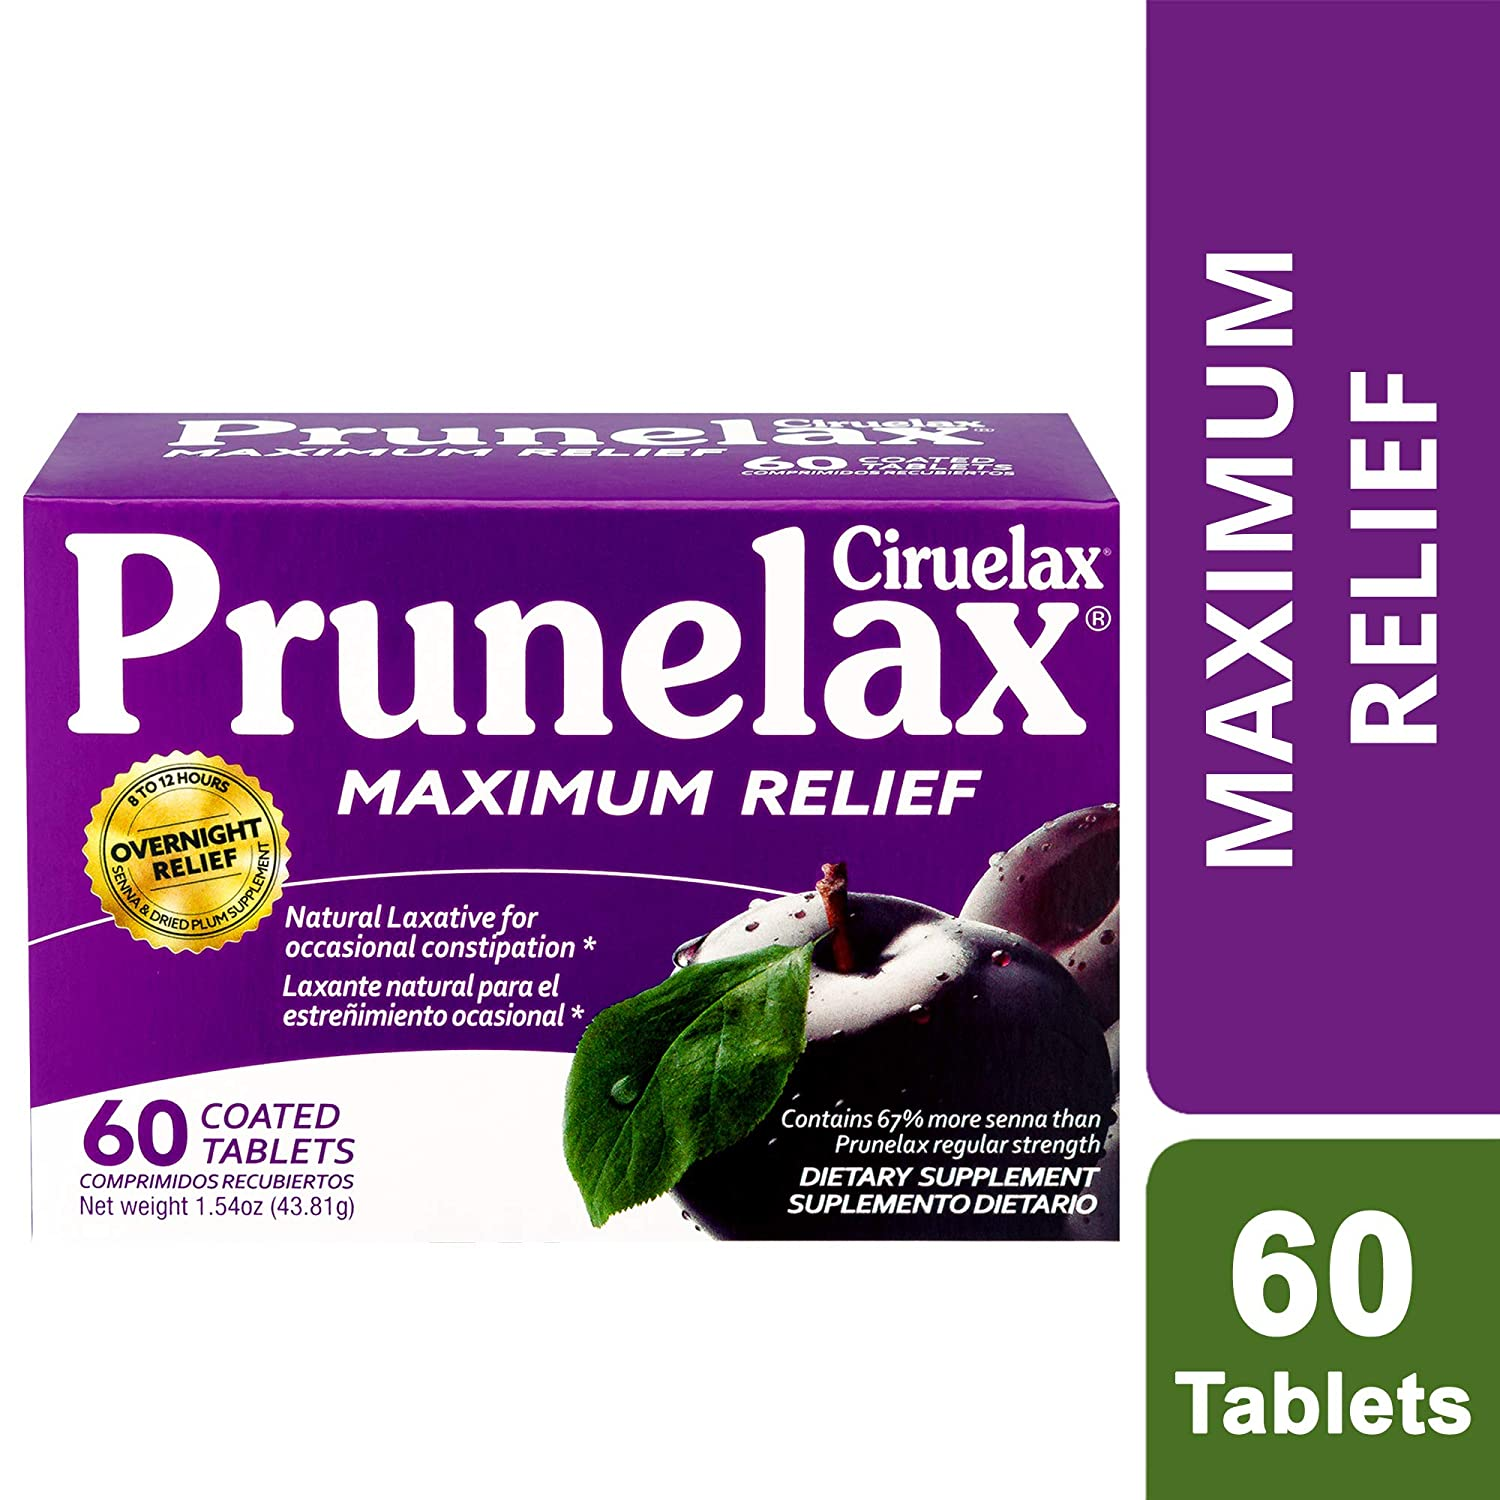 Amazon.com: Prunelax Ciruelax Natural Laxative Maximum Relief Tablets, 60Count, Pack of 6: Health & Personal Care